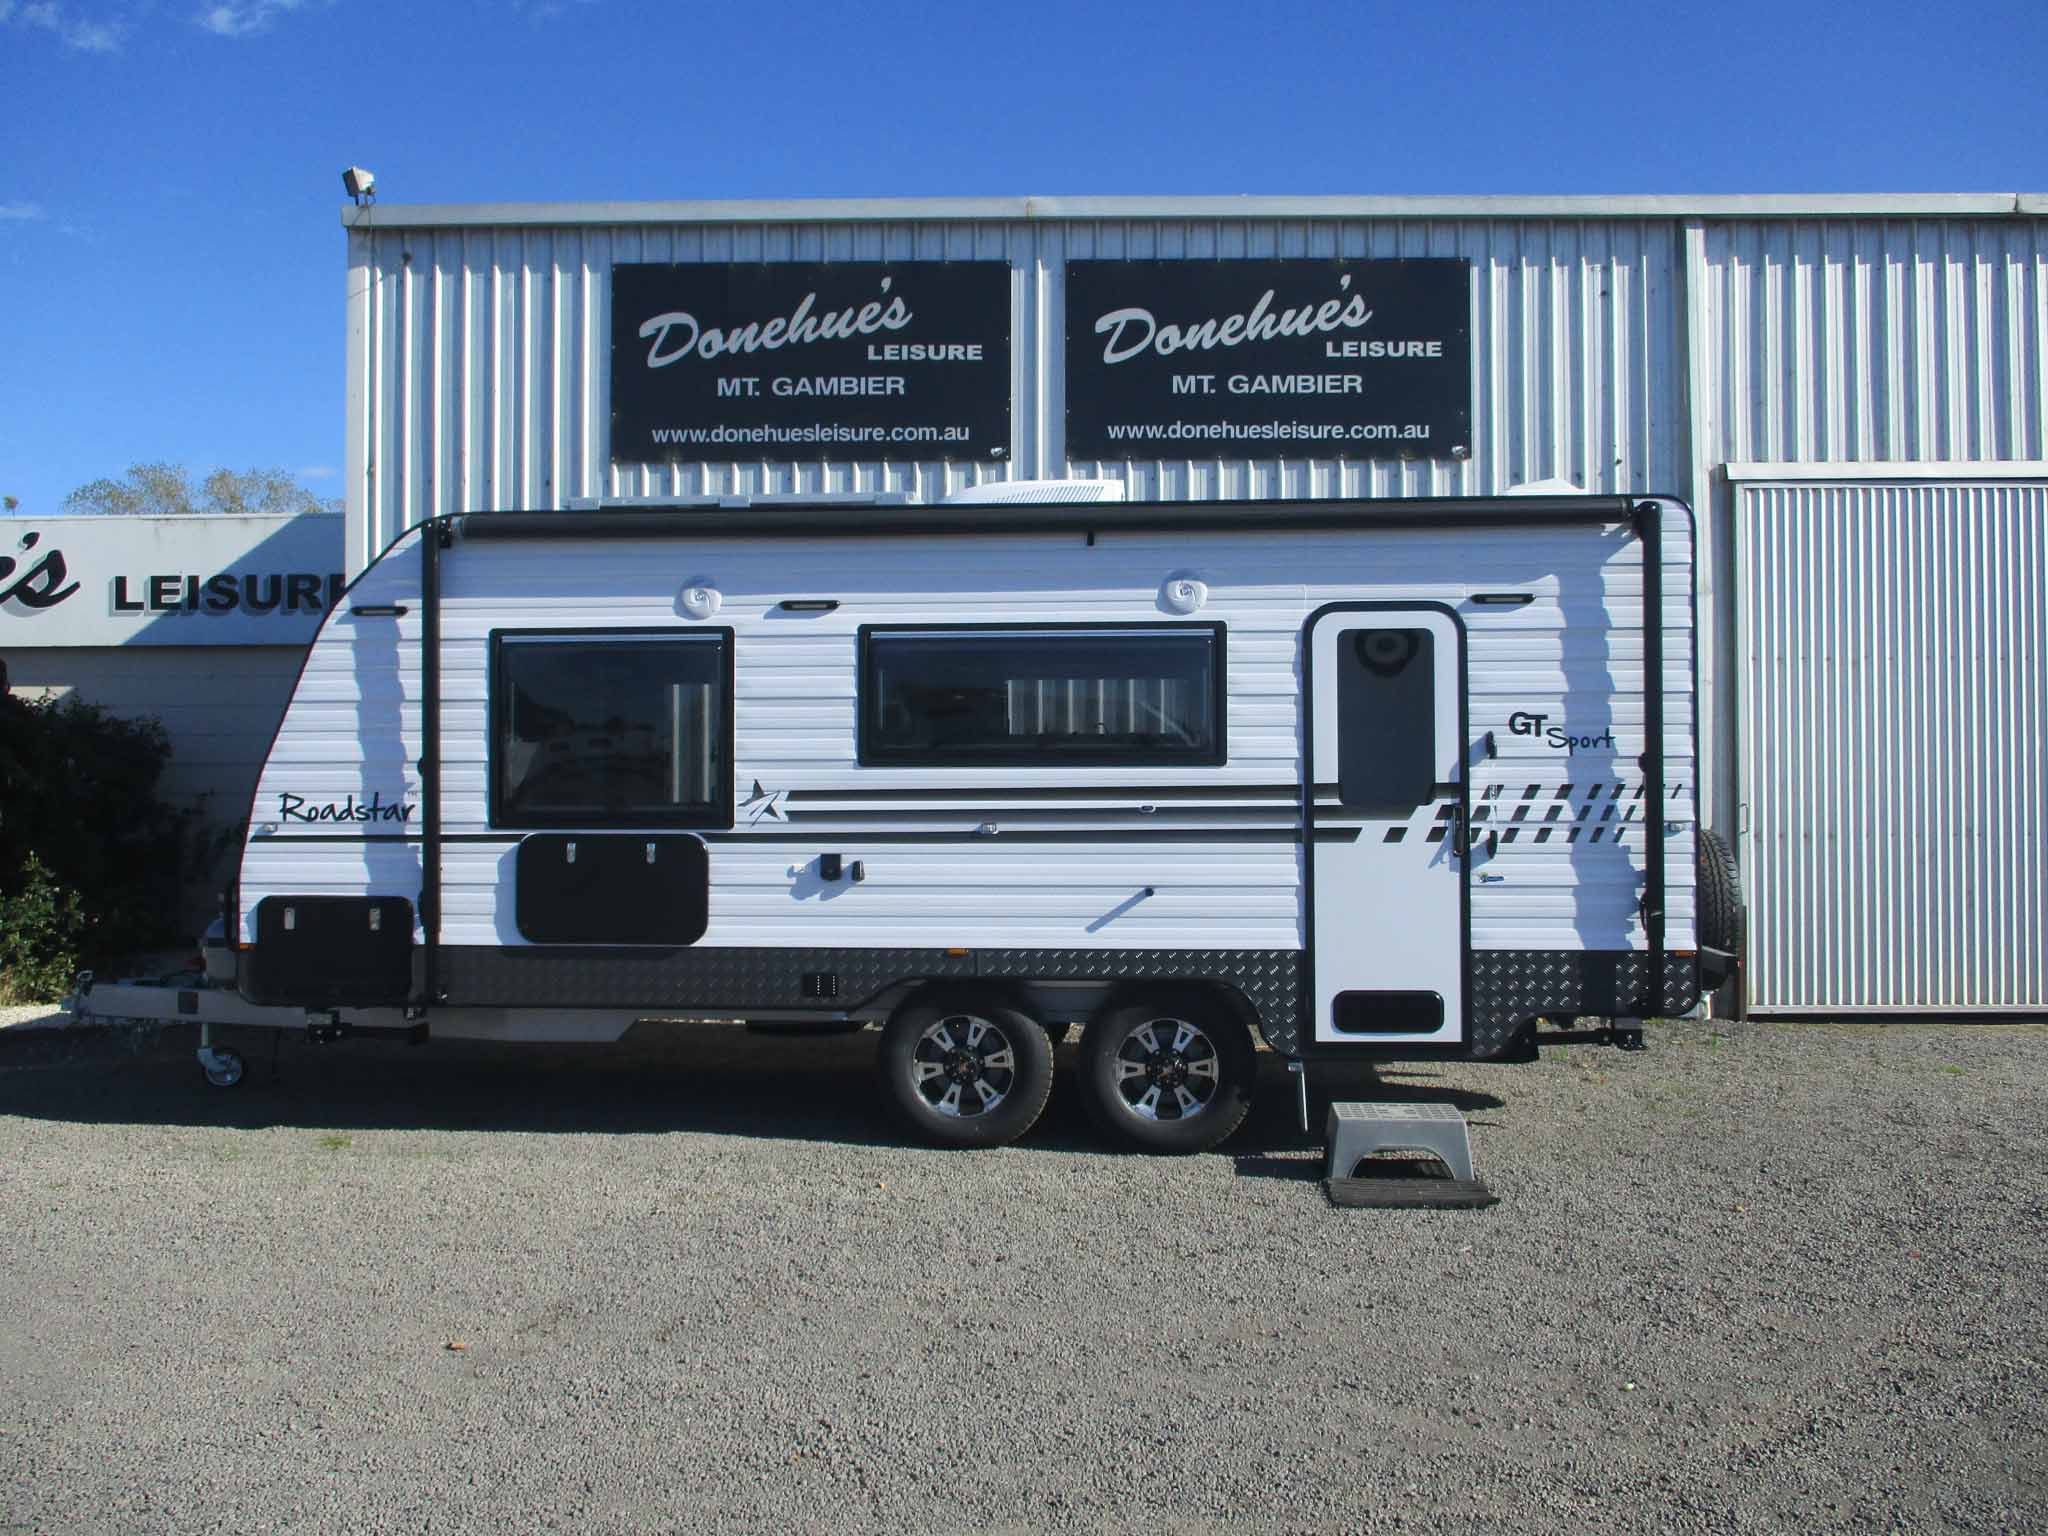 Donehues Leisure New Roadstar GT Sport Caravan Mt Gambier 12256 2